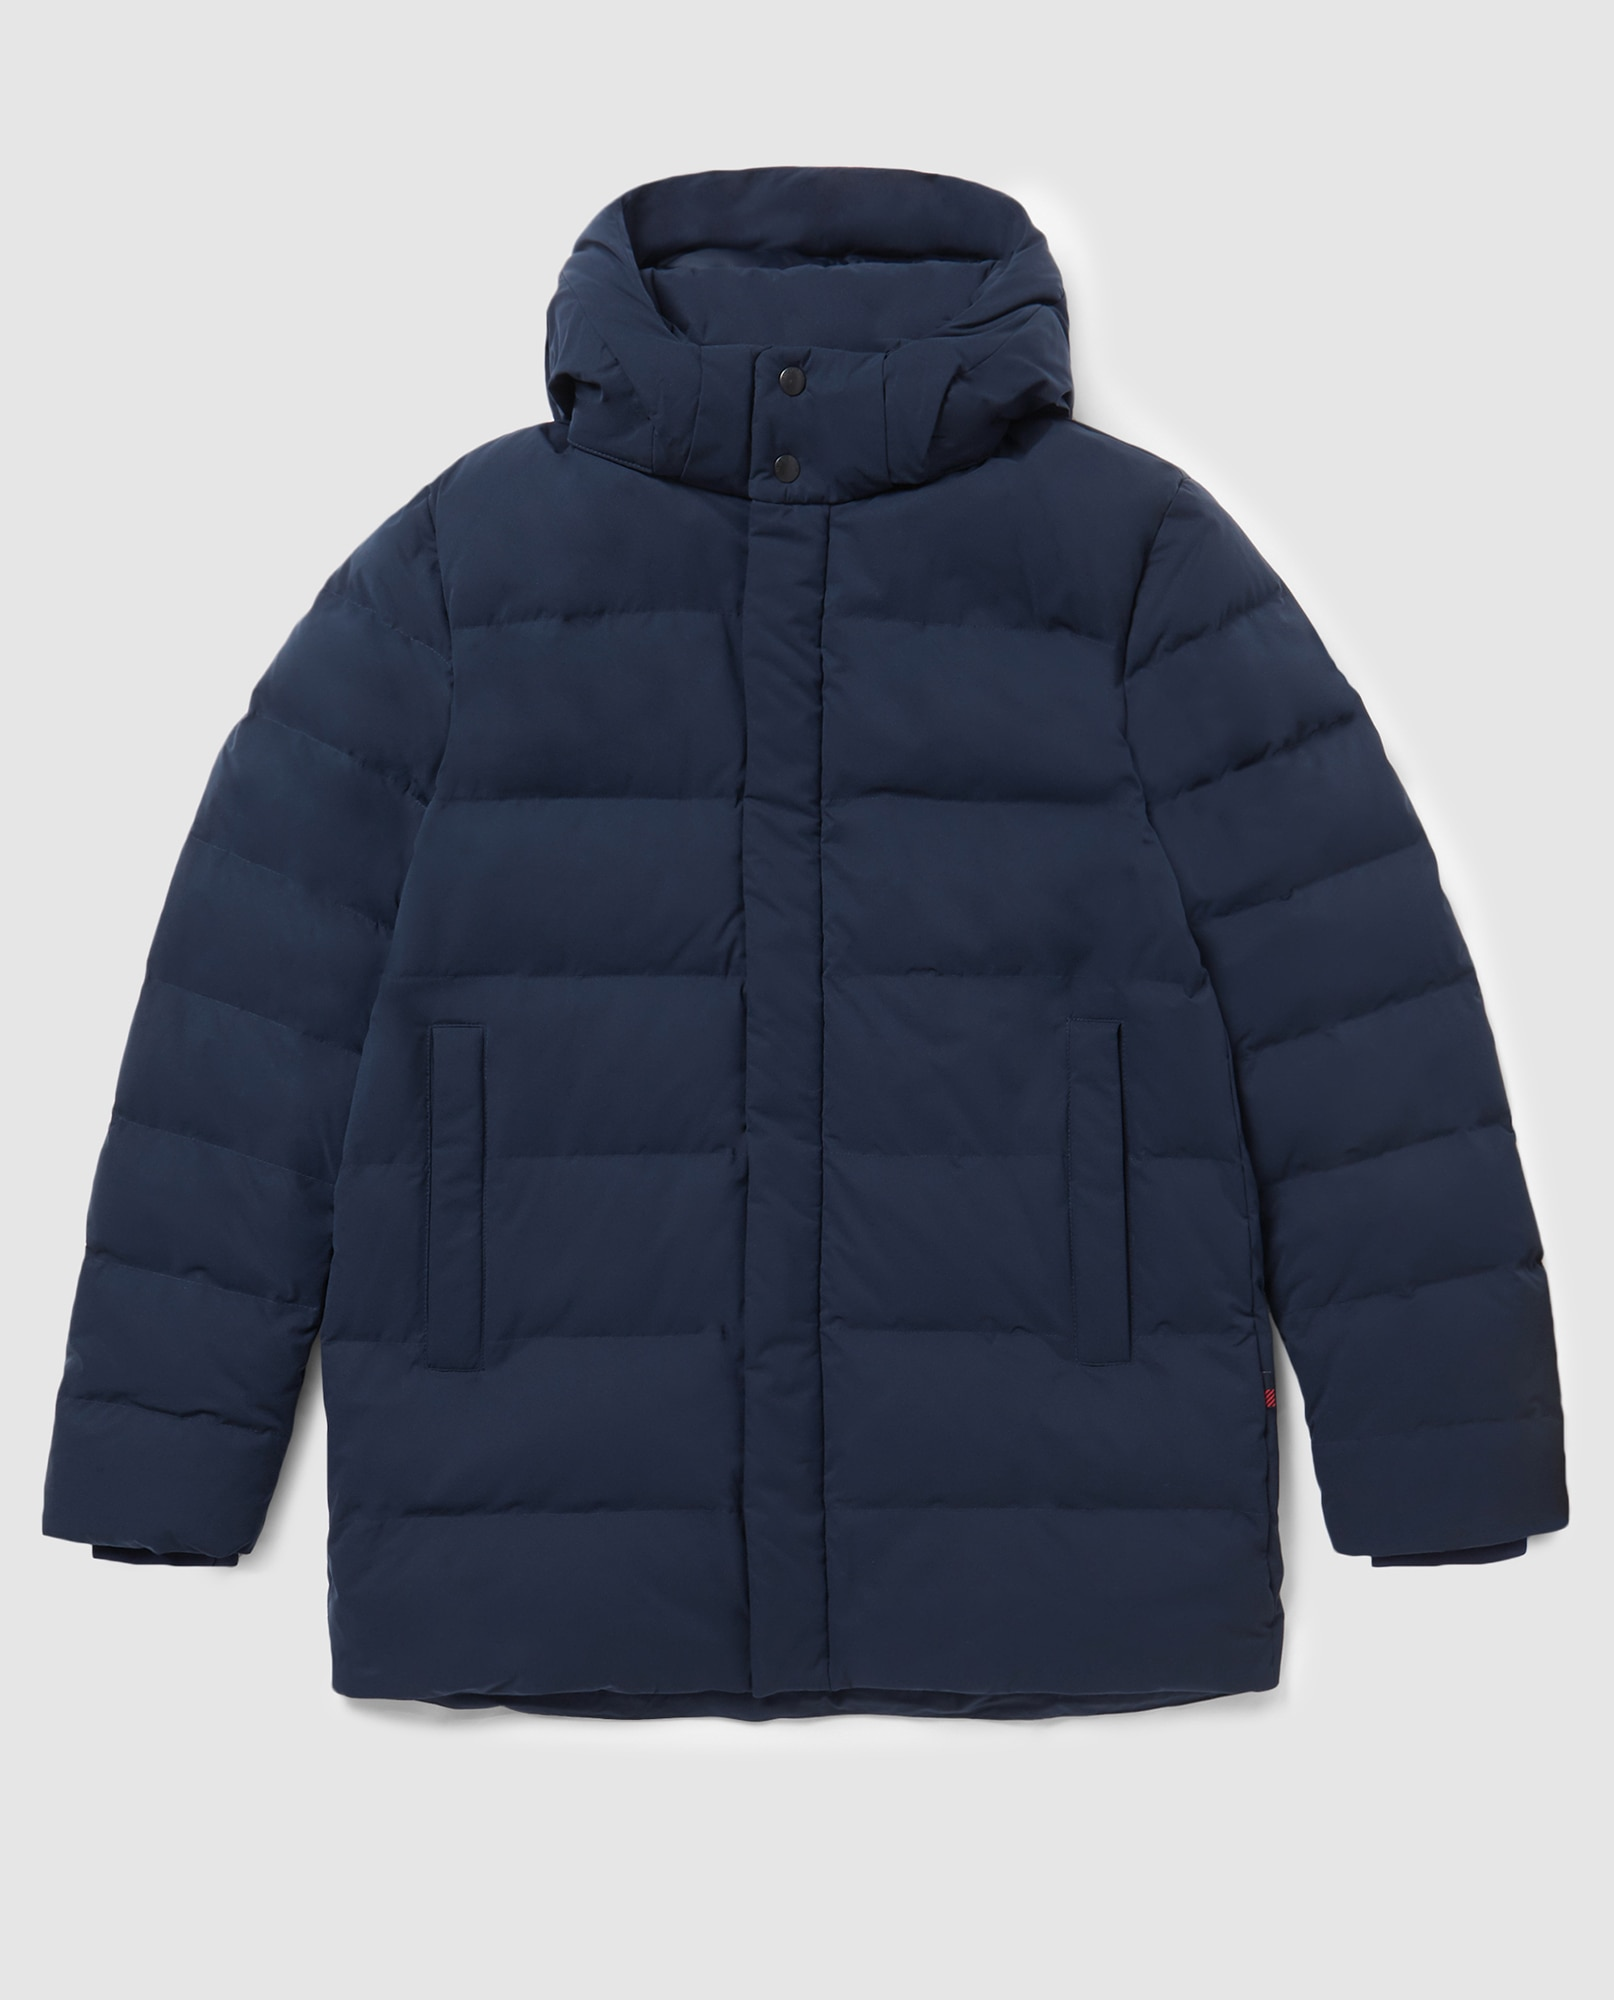 SIERRA LONG JACKET DETACHABLE HOOD